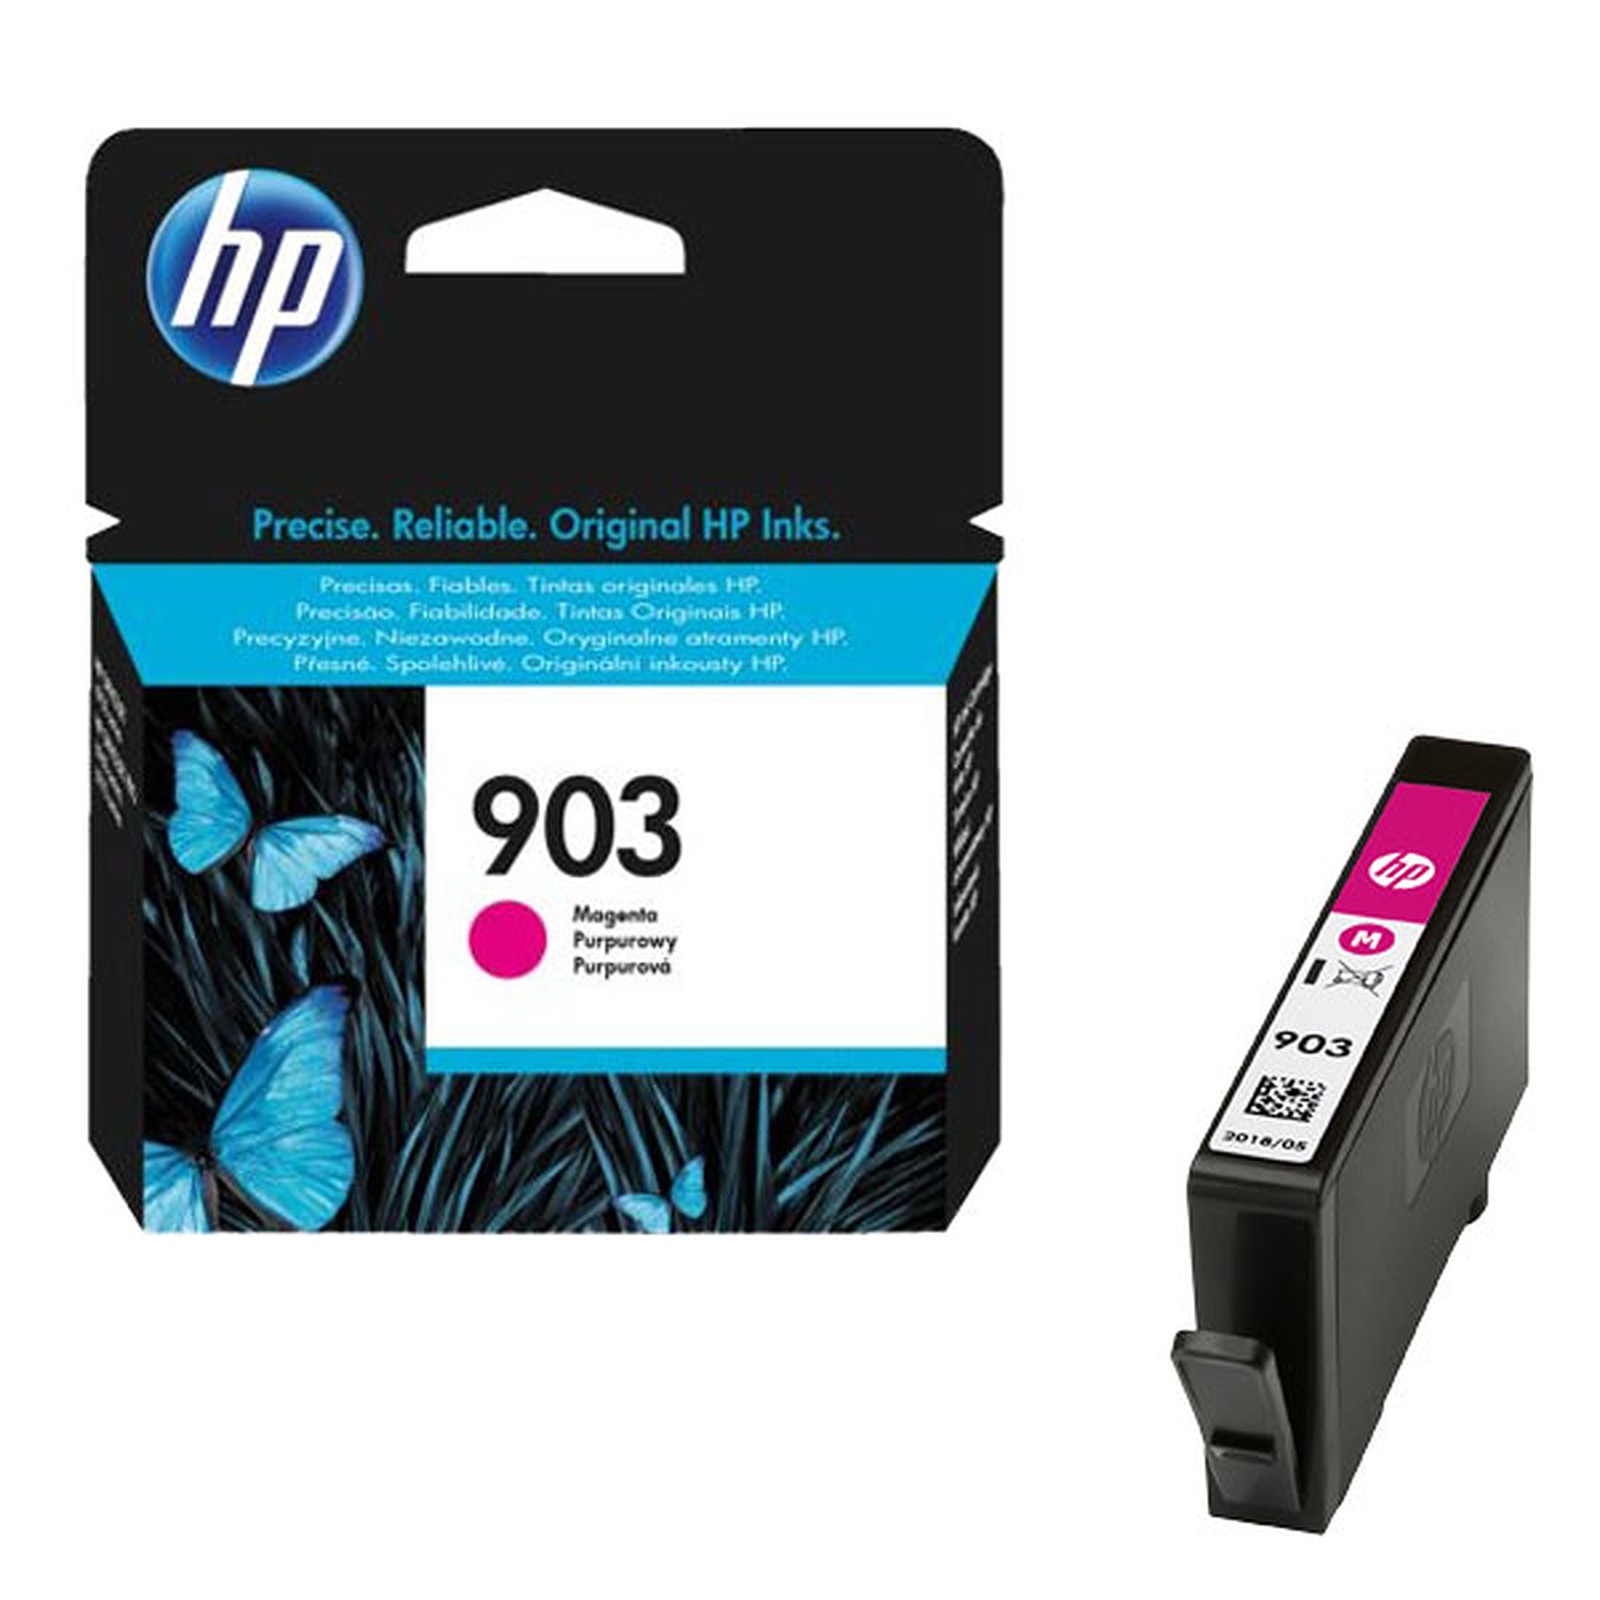 HP 903 Inkjet Cartridge - T6L91AE